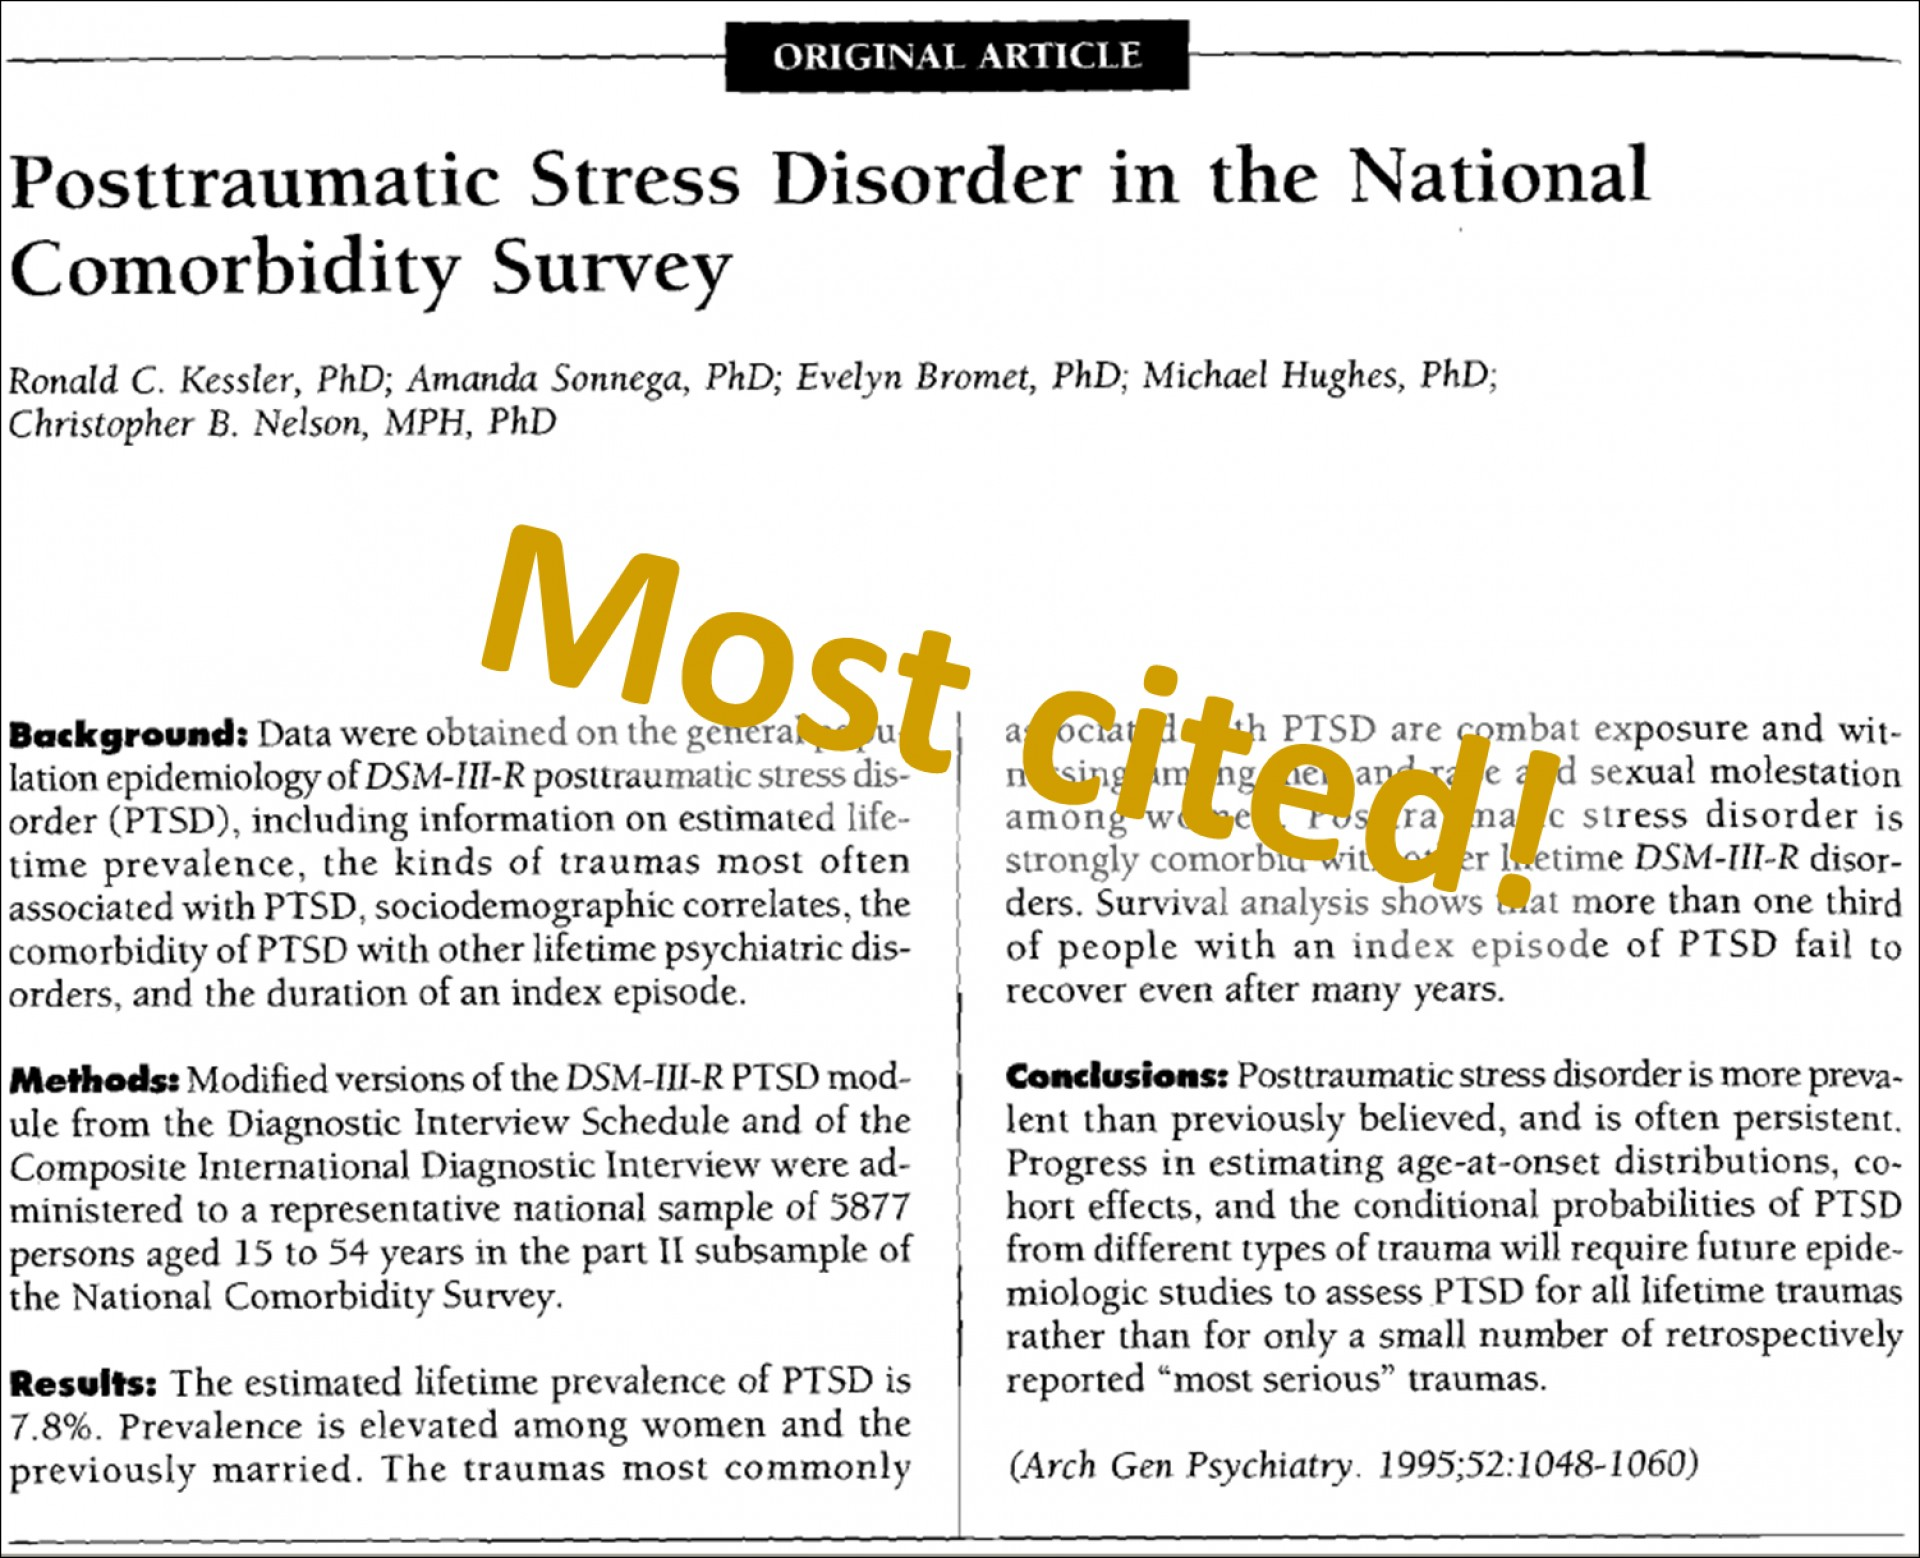 007 Latest Research On Post Traumatic Stress Disorder Paper Trauma Recovery Most Cited Magnificent Information Topics 1920